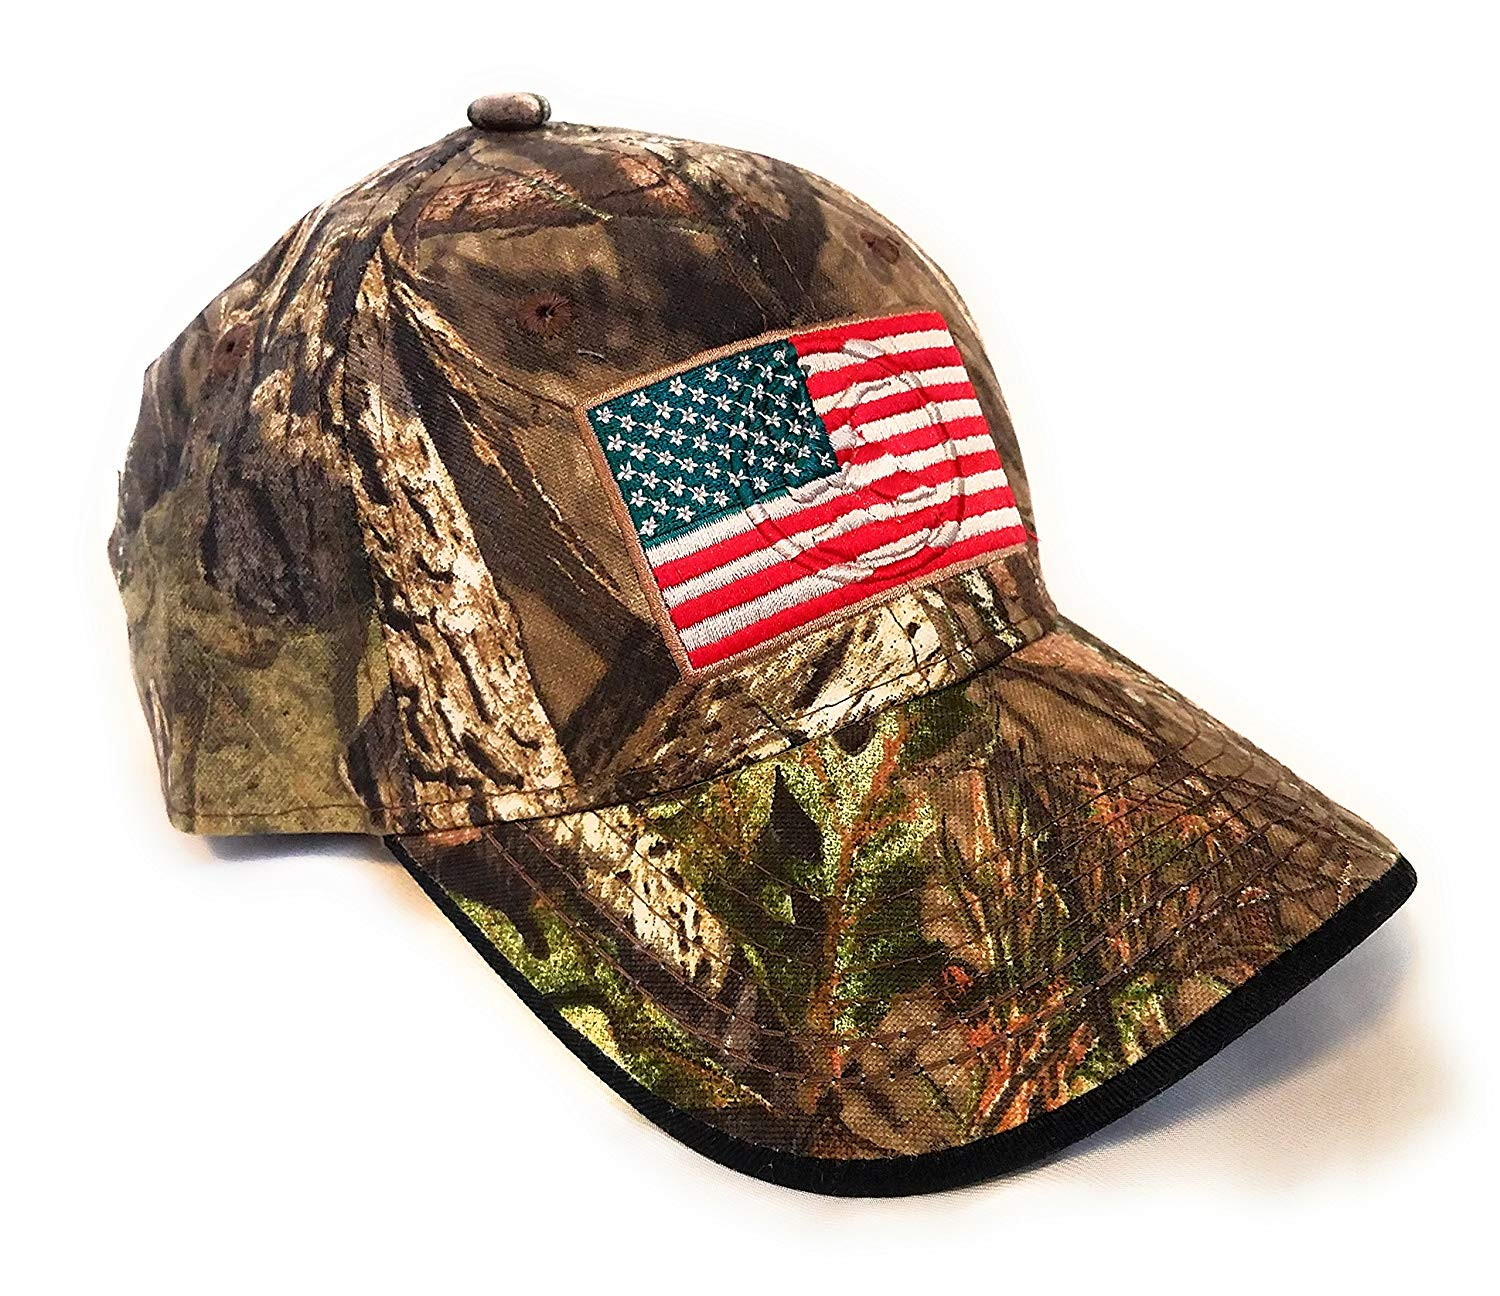 e74a98d4c3ccc7 Get Quotations · Mossy Oak Camping, Hunting, Outdoors American Flag Camo Cap,  Army Military Camo Cap